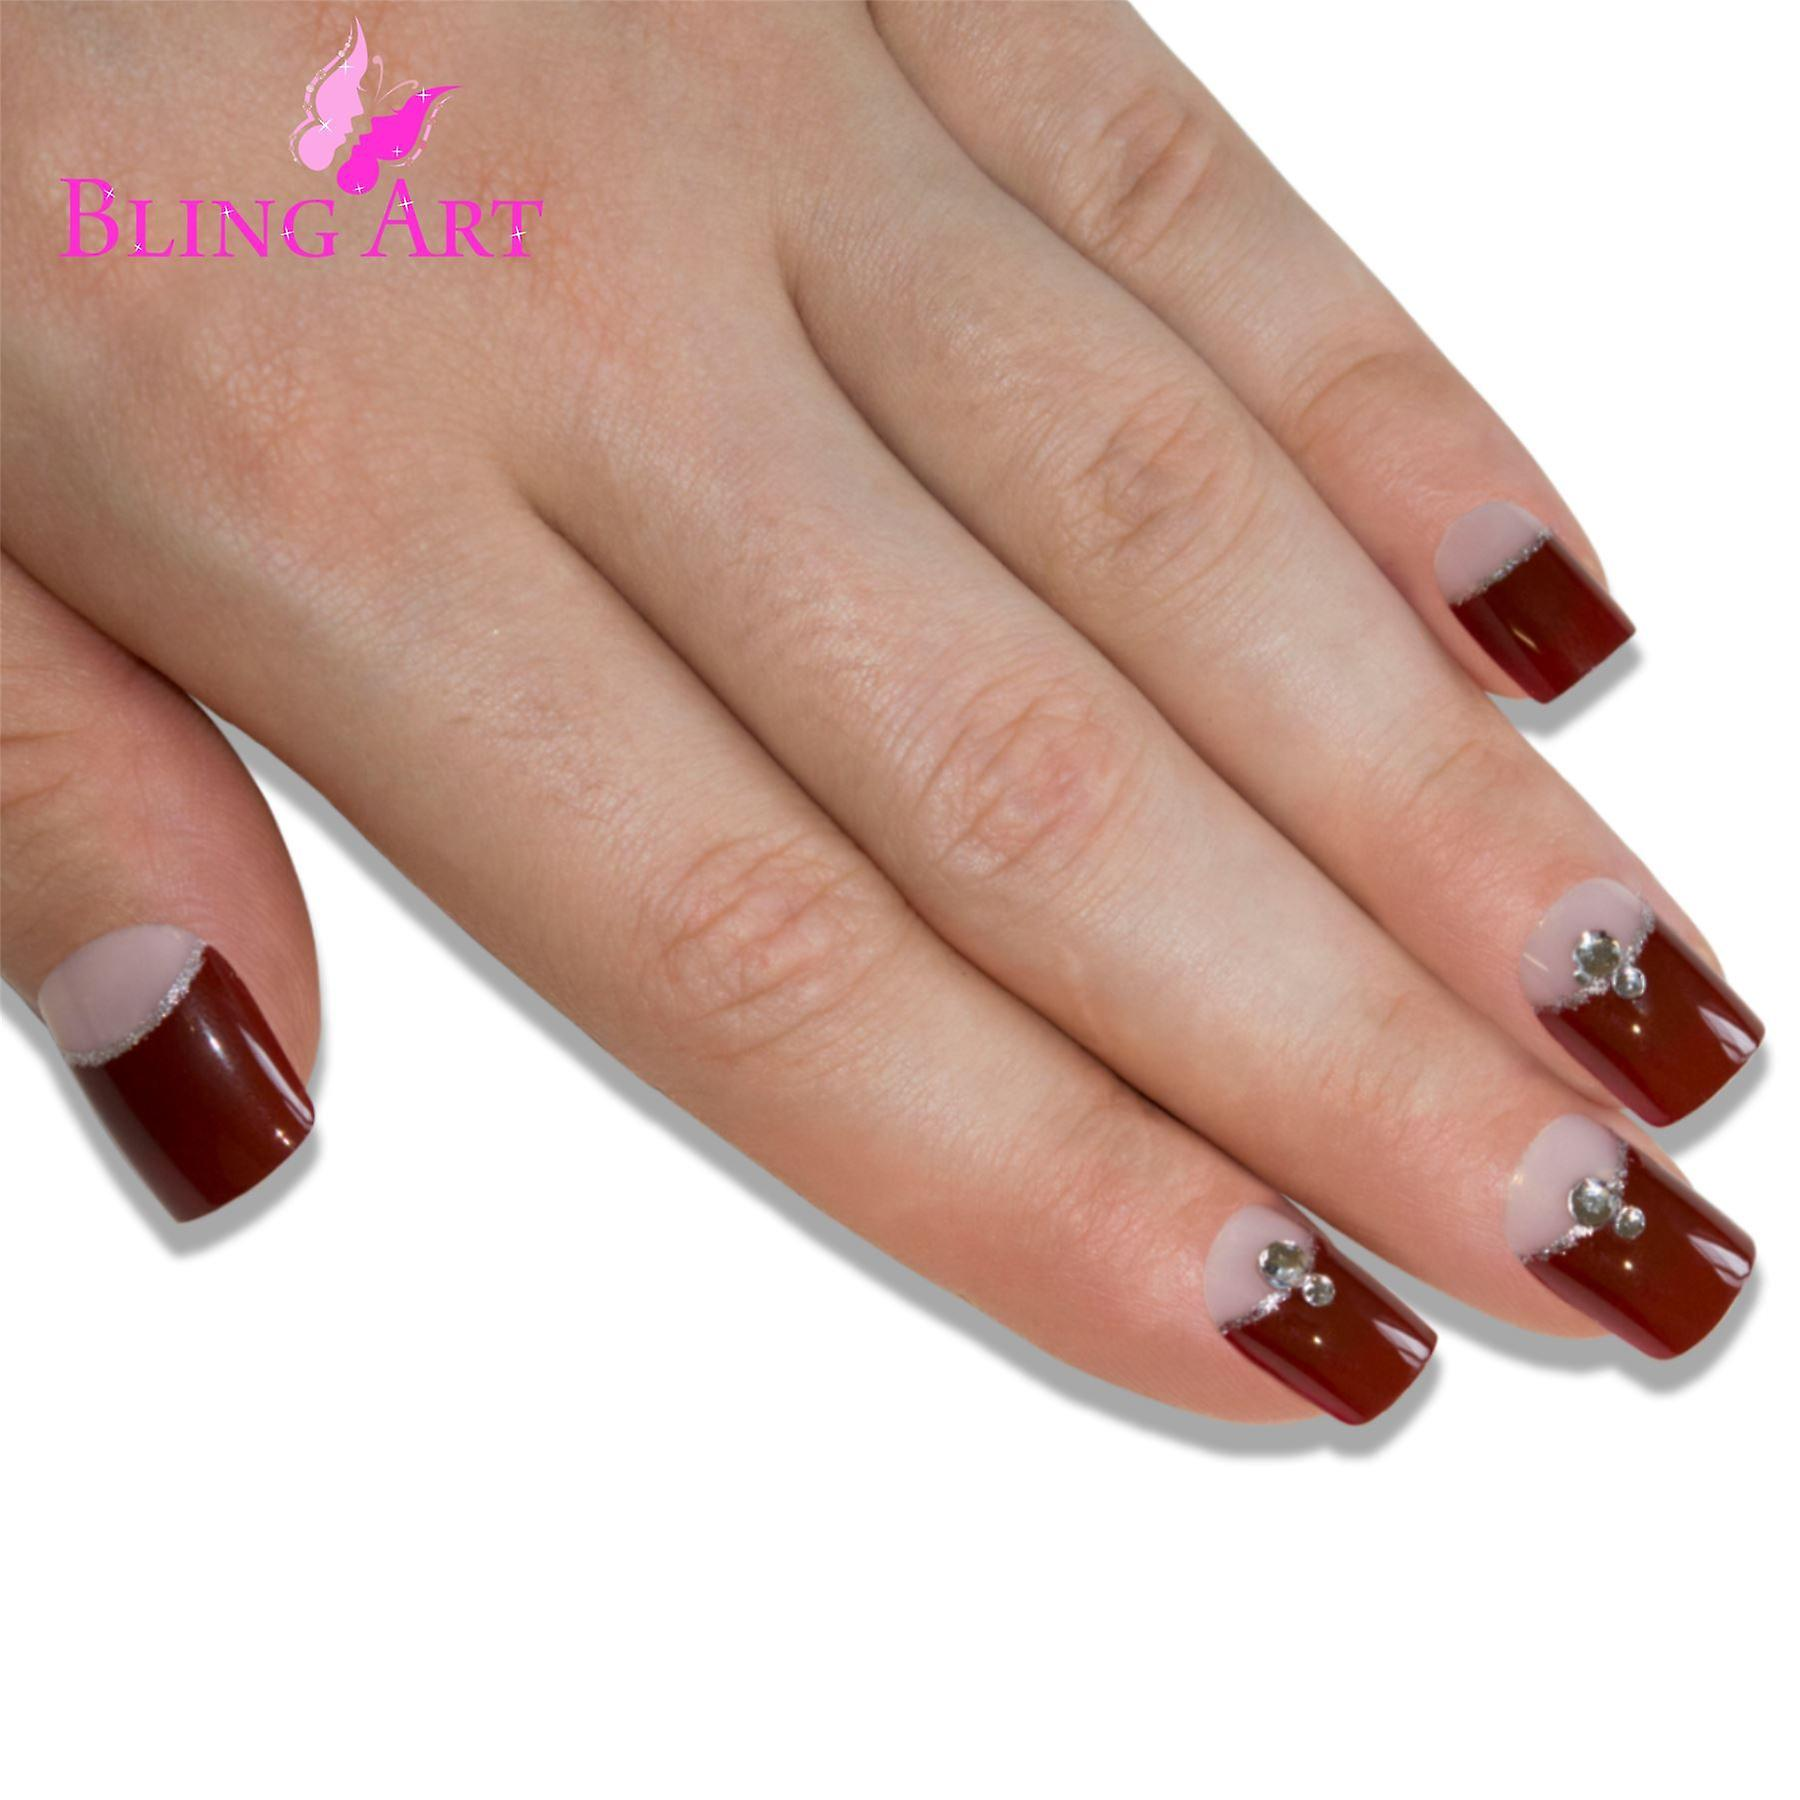 False nails by bling art red brown french manicure fake medium tips with glue